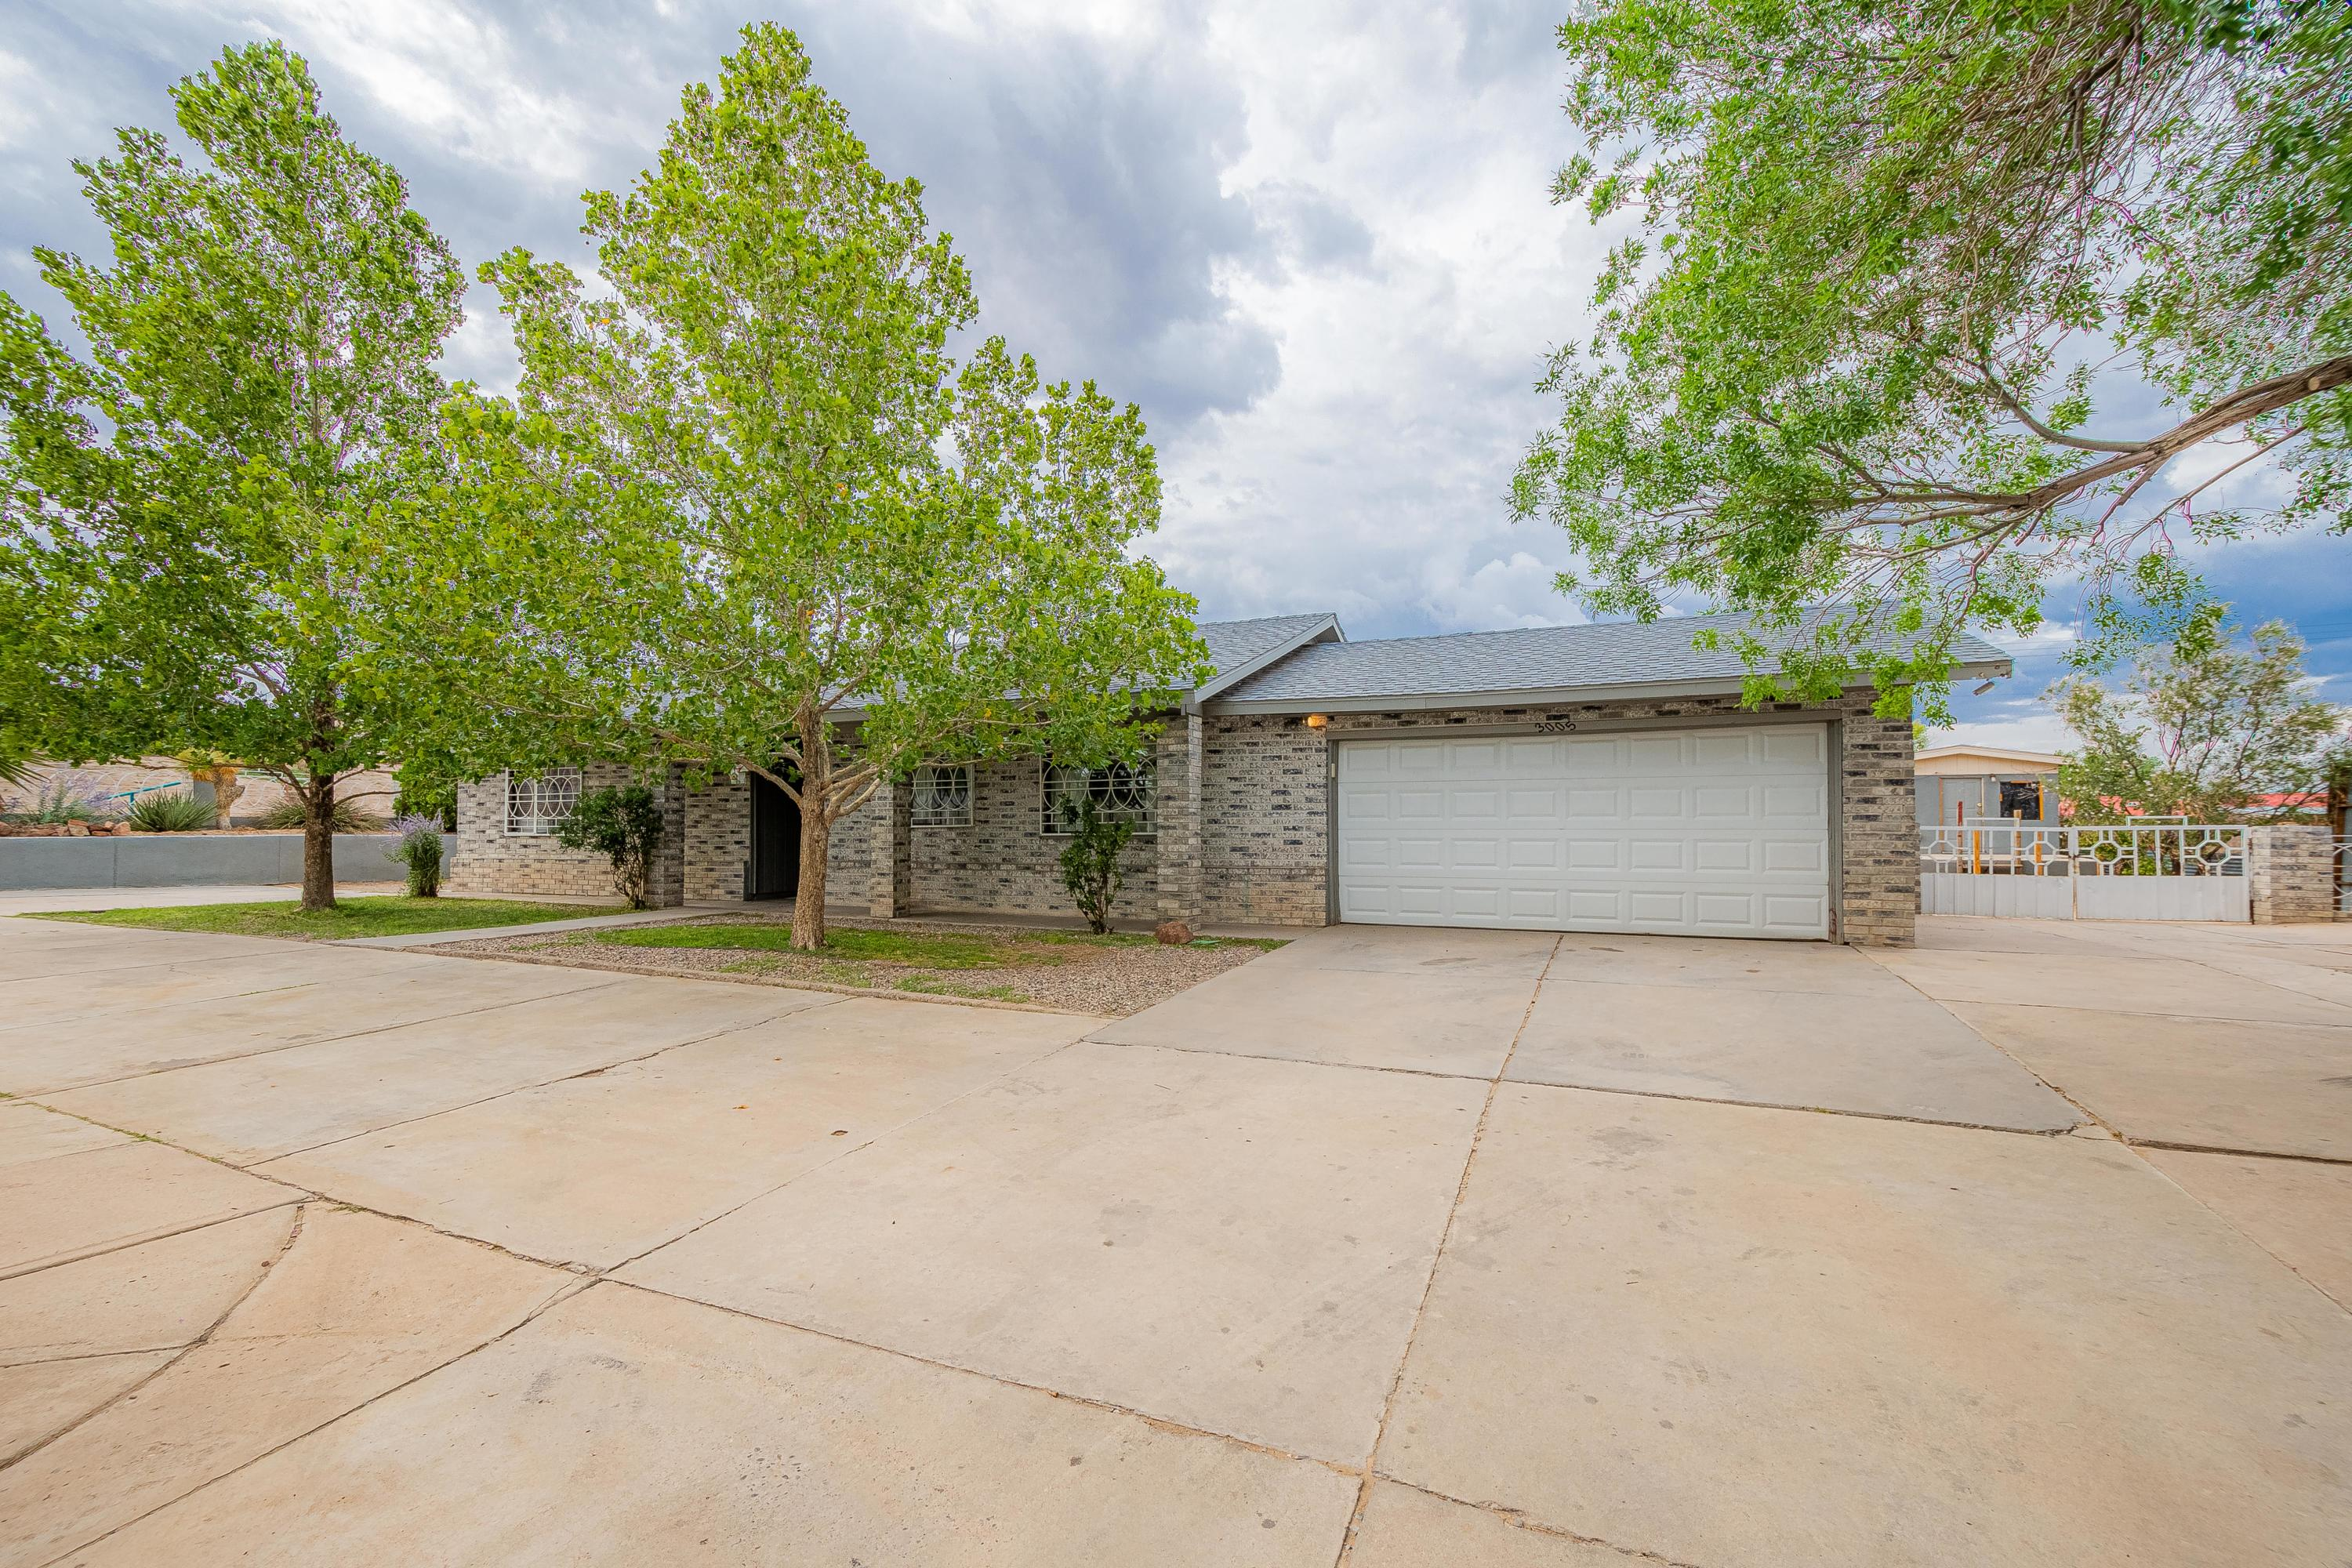 The home you've been looking for just went on the market! This 3 bedroom, 2 bath home sits on .50 of an acre, with plenty of room for your outside toys, animals and backyard access as well. Don't miss out on this South Valley dream home.